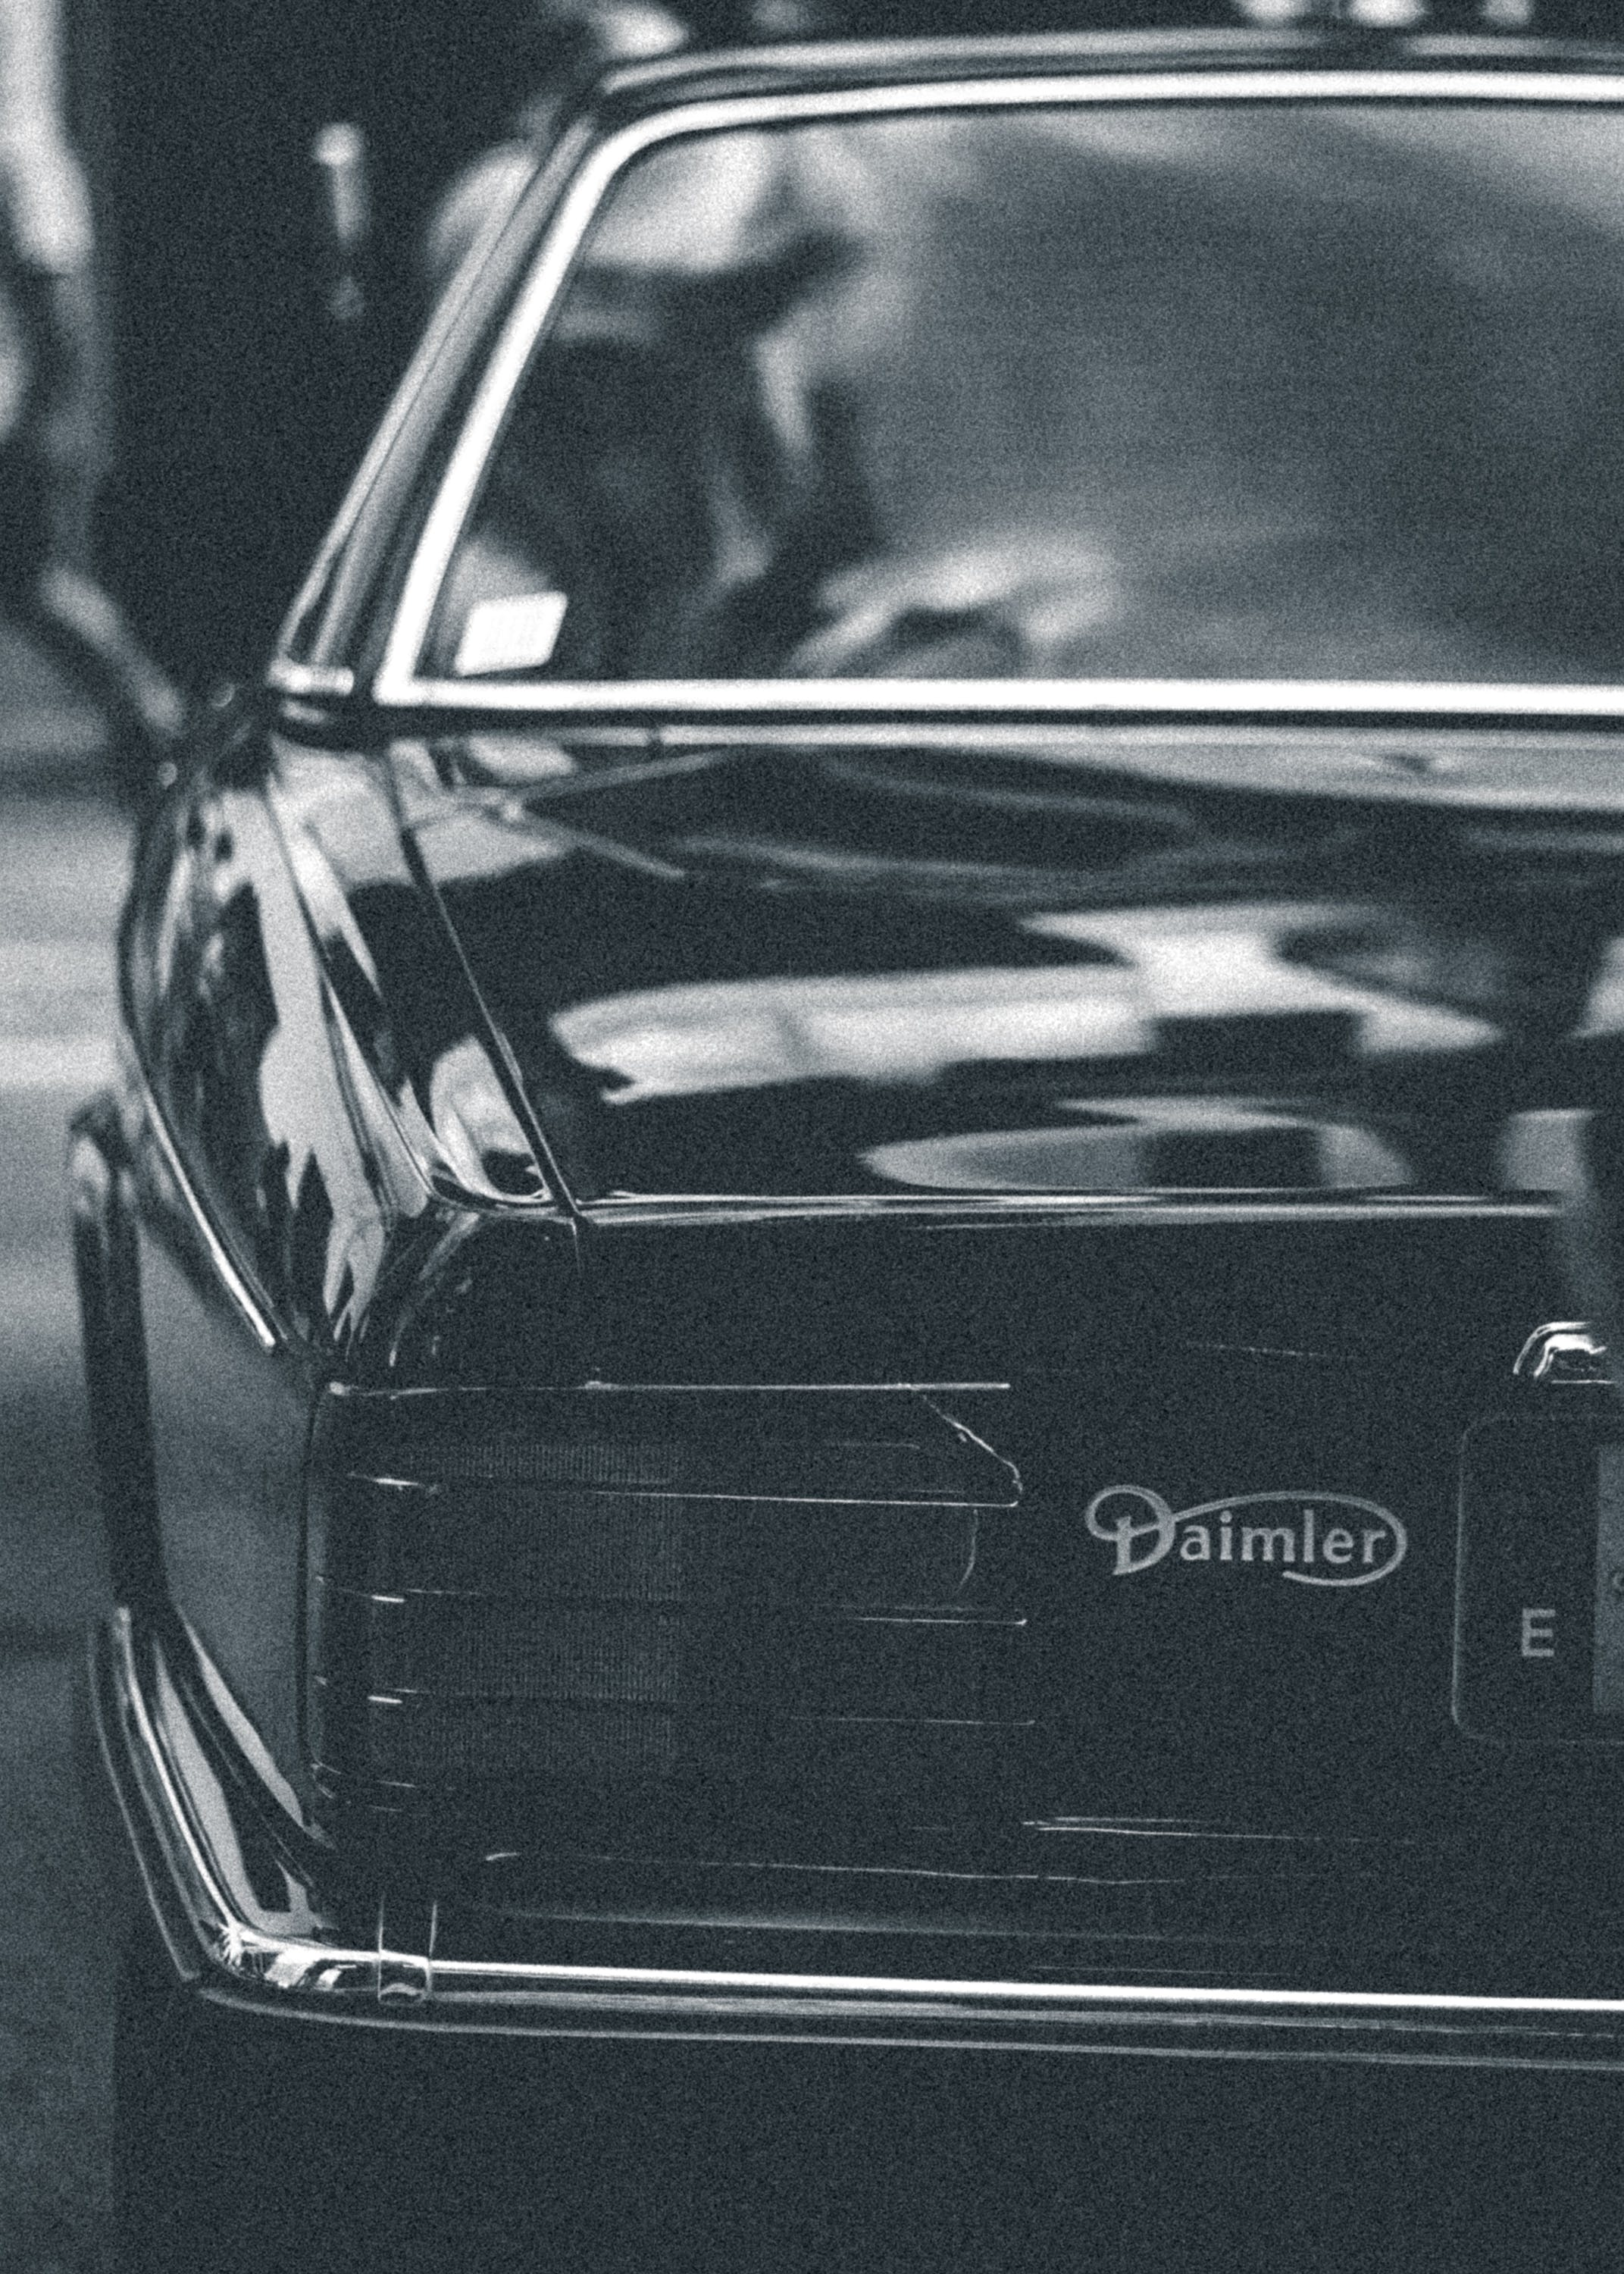 Grayscale Photo of Daimler Car